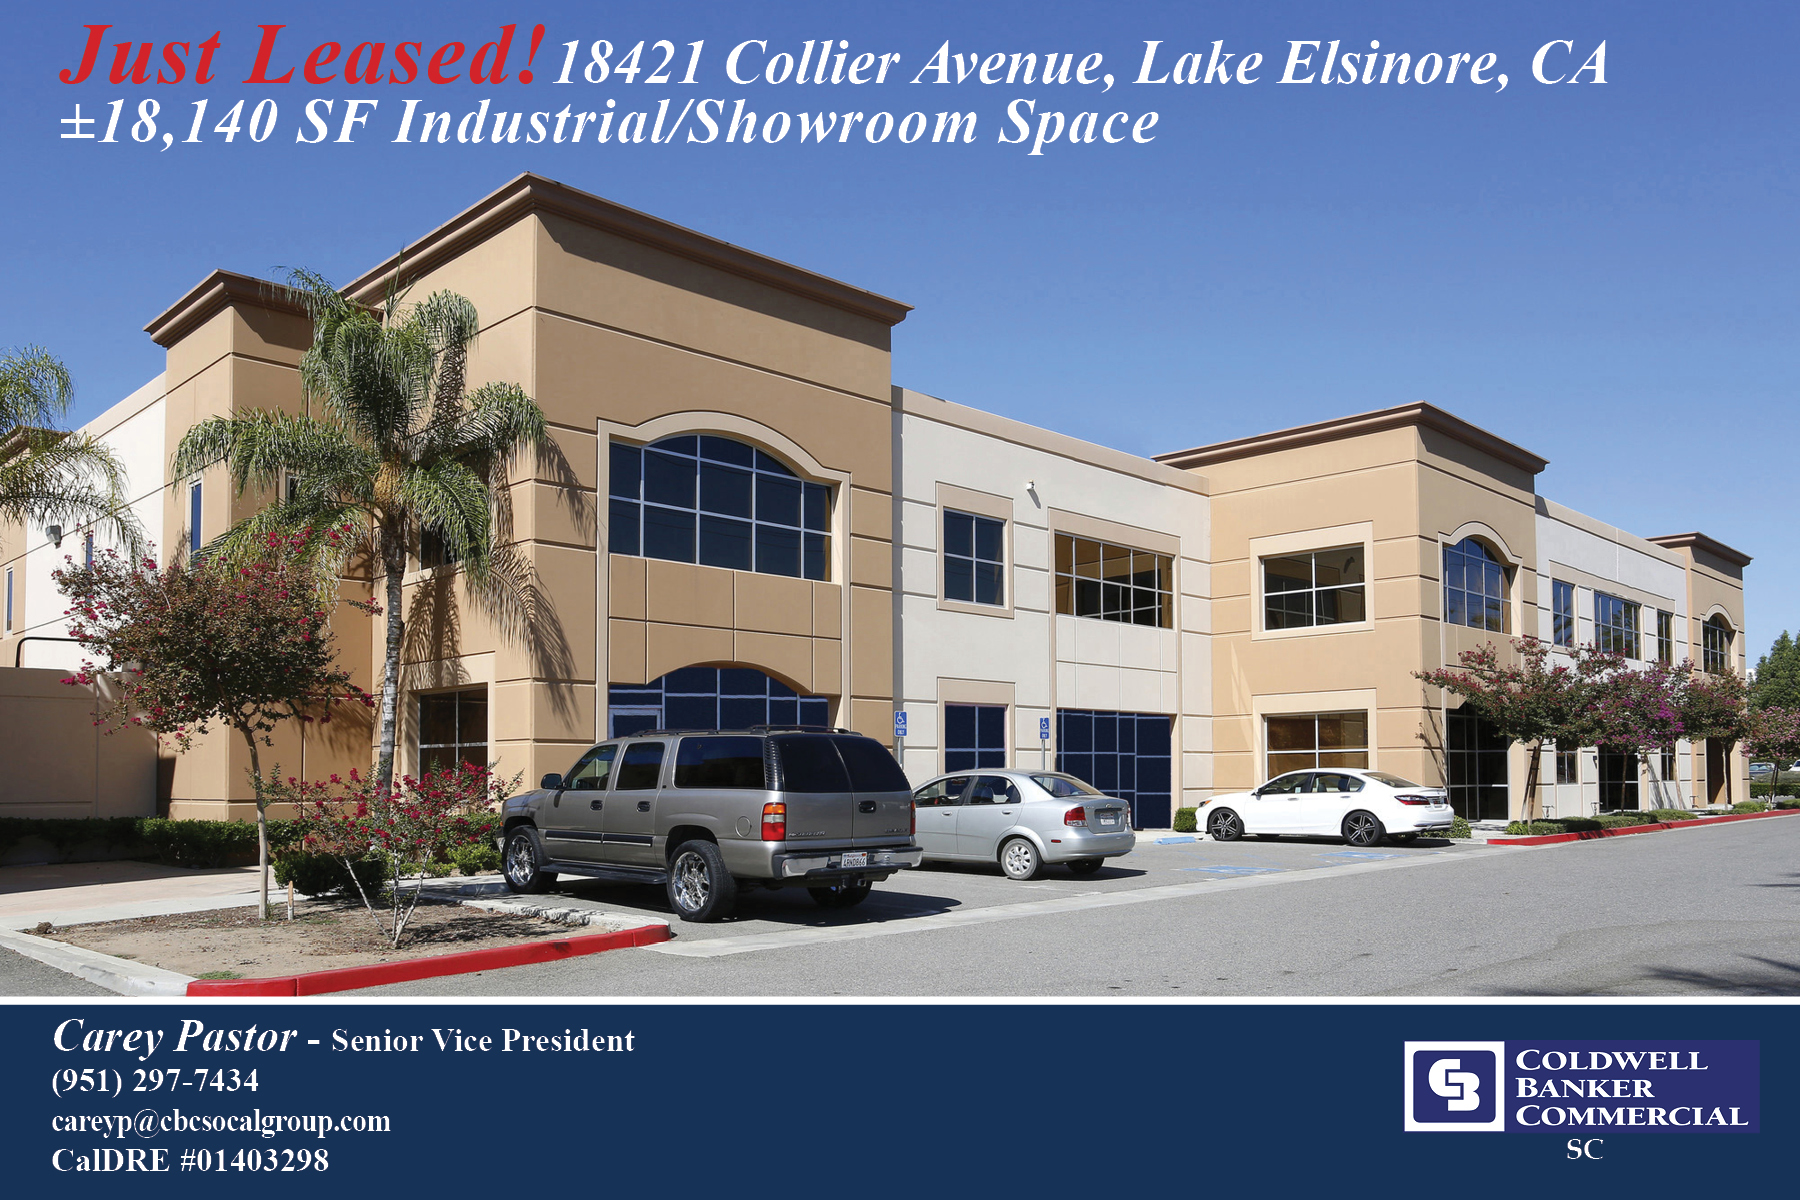 LEASED! ±18,140 SF of Industrial / Showroom Space in Lake Elsinore